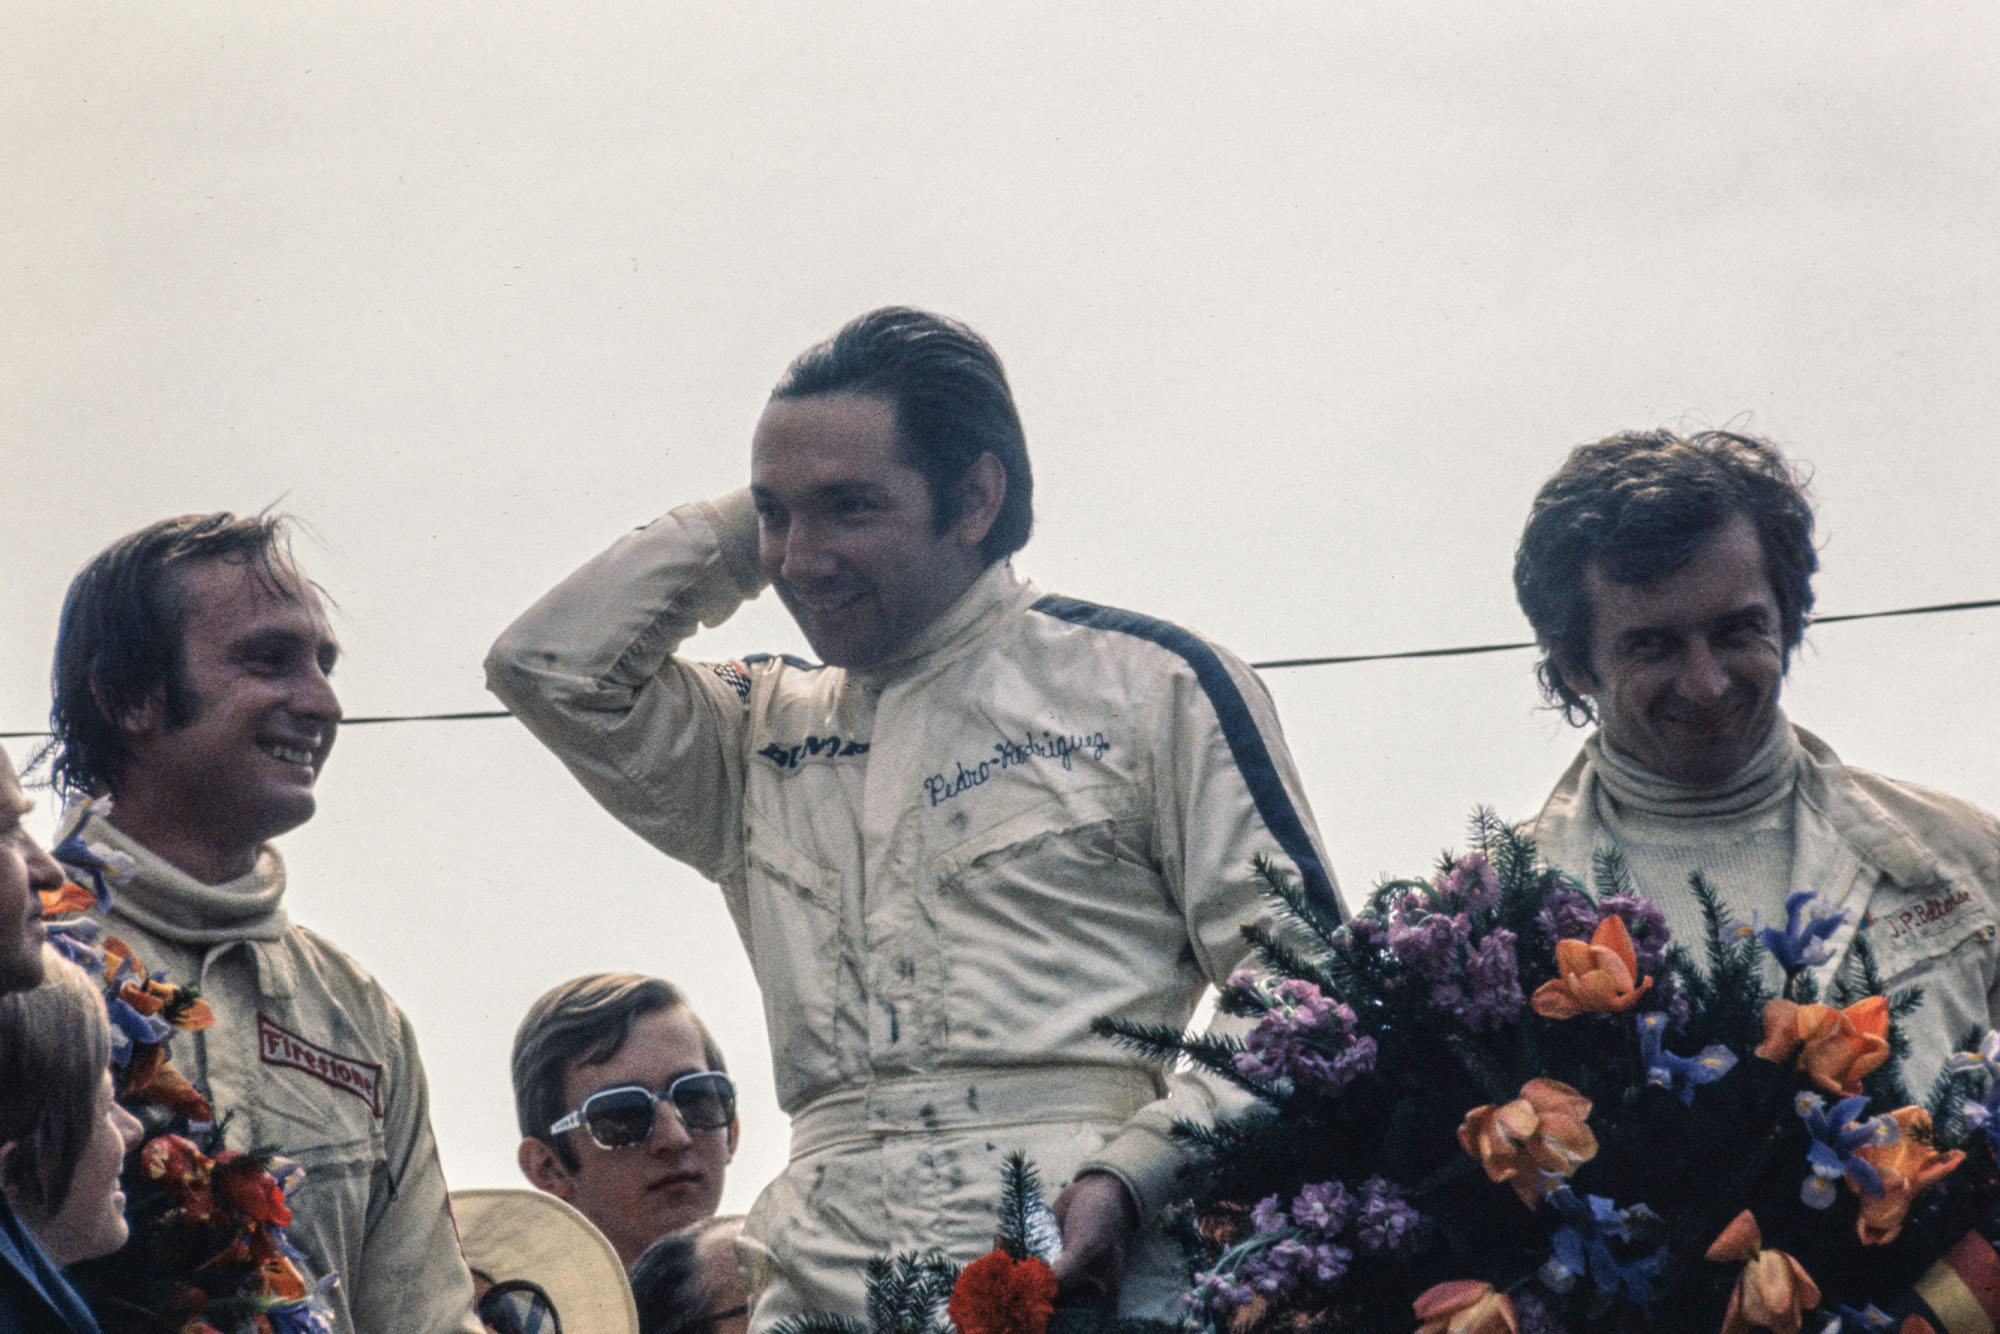 BRM's Pedro Rodriguez stands on the podium after winning the 1970 Belgian Grand Prix.